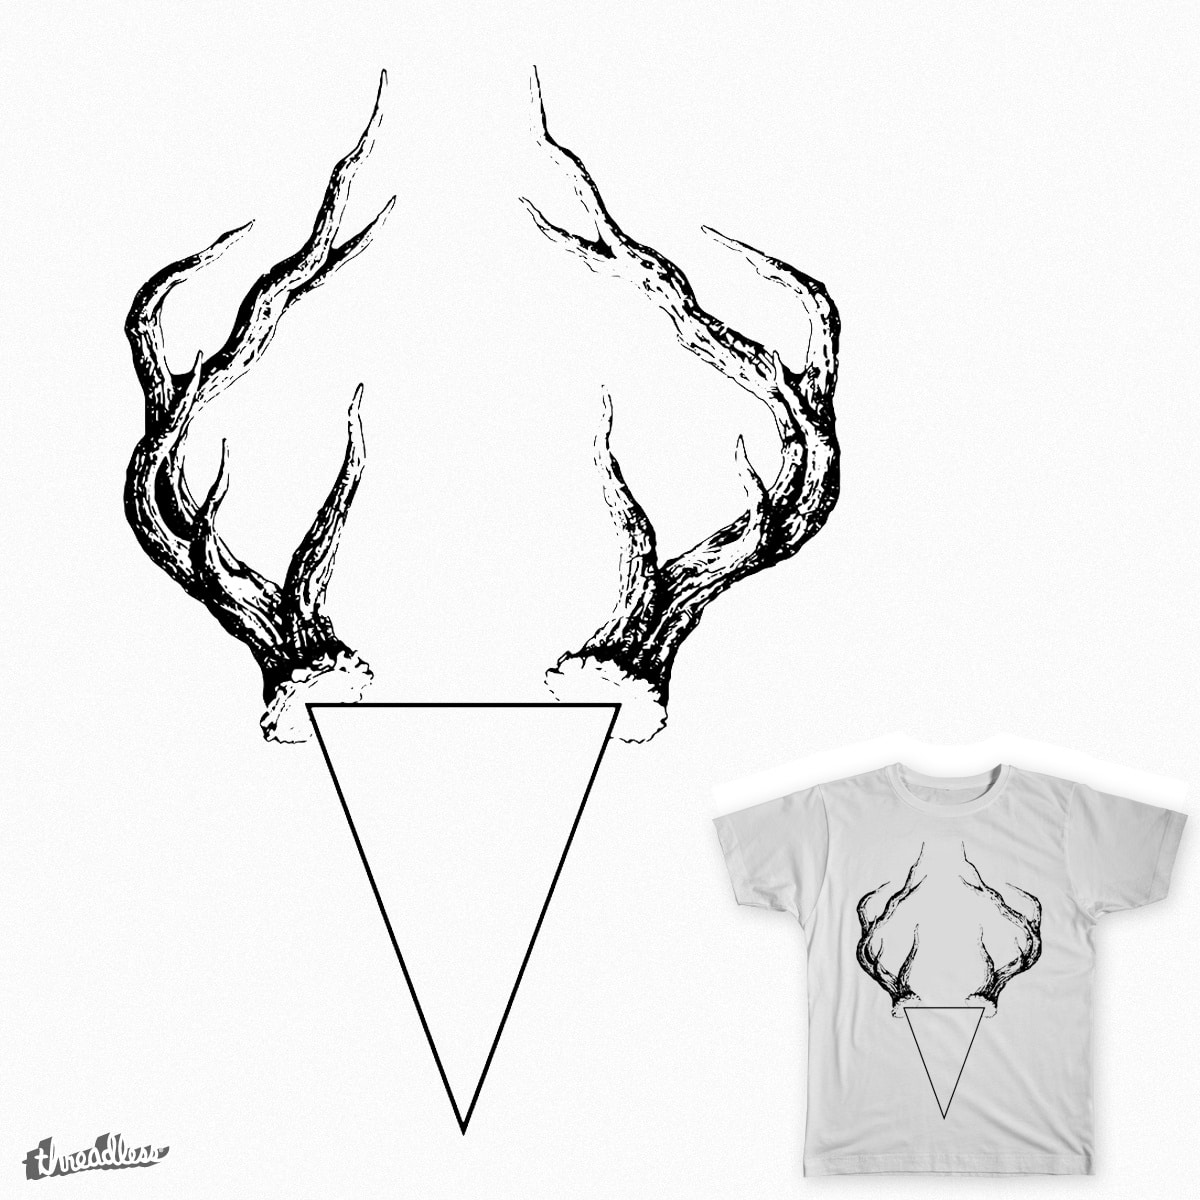 Triantler by JonnyBlackmore on Threadless